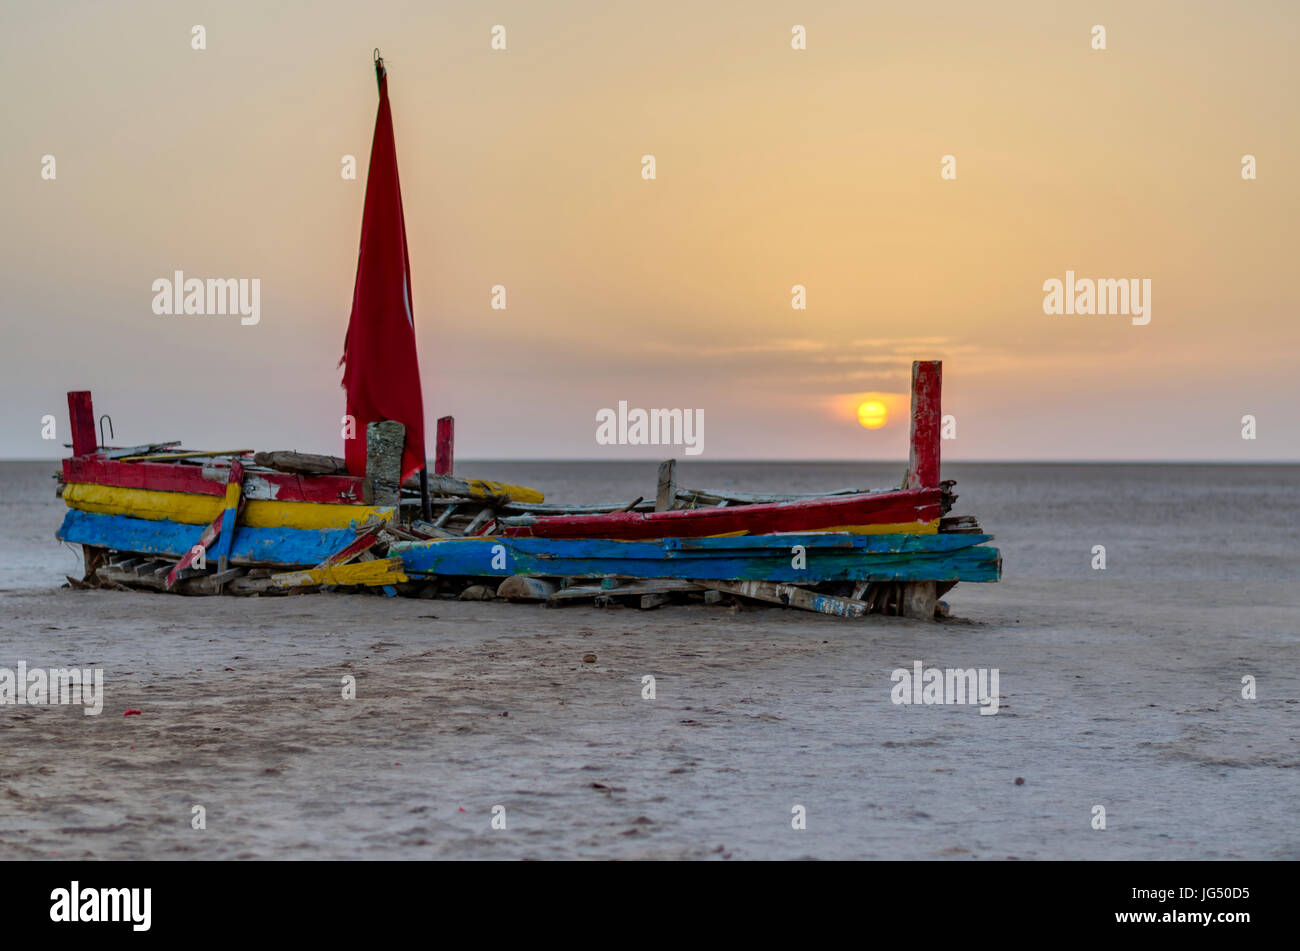 abandoned ship - Stock Image